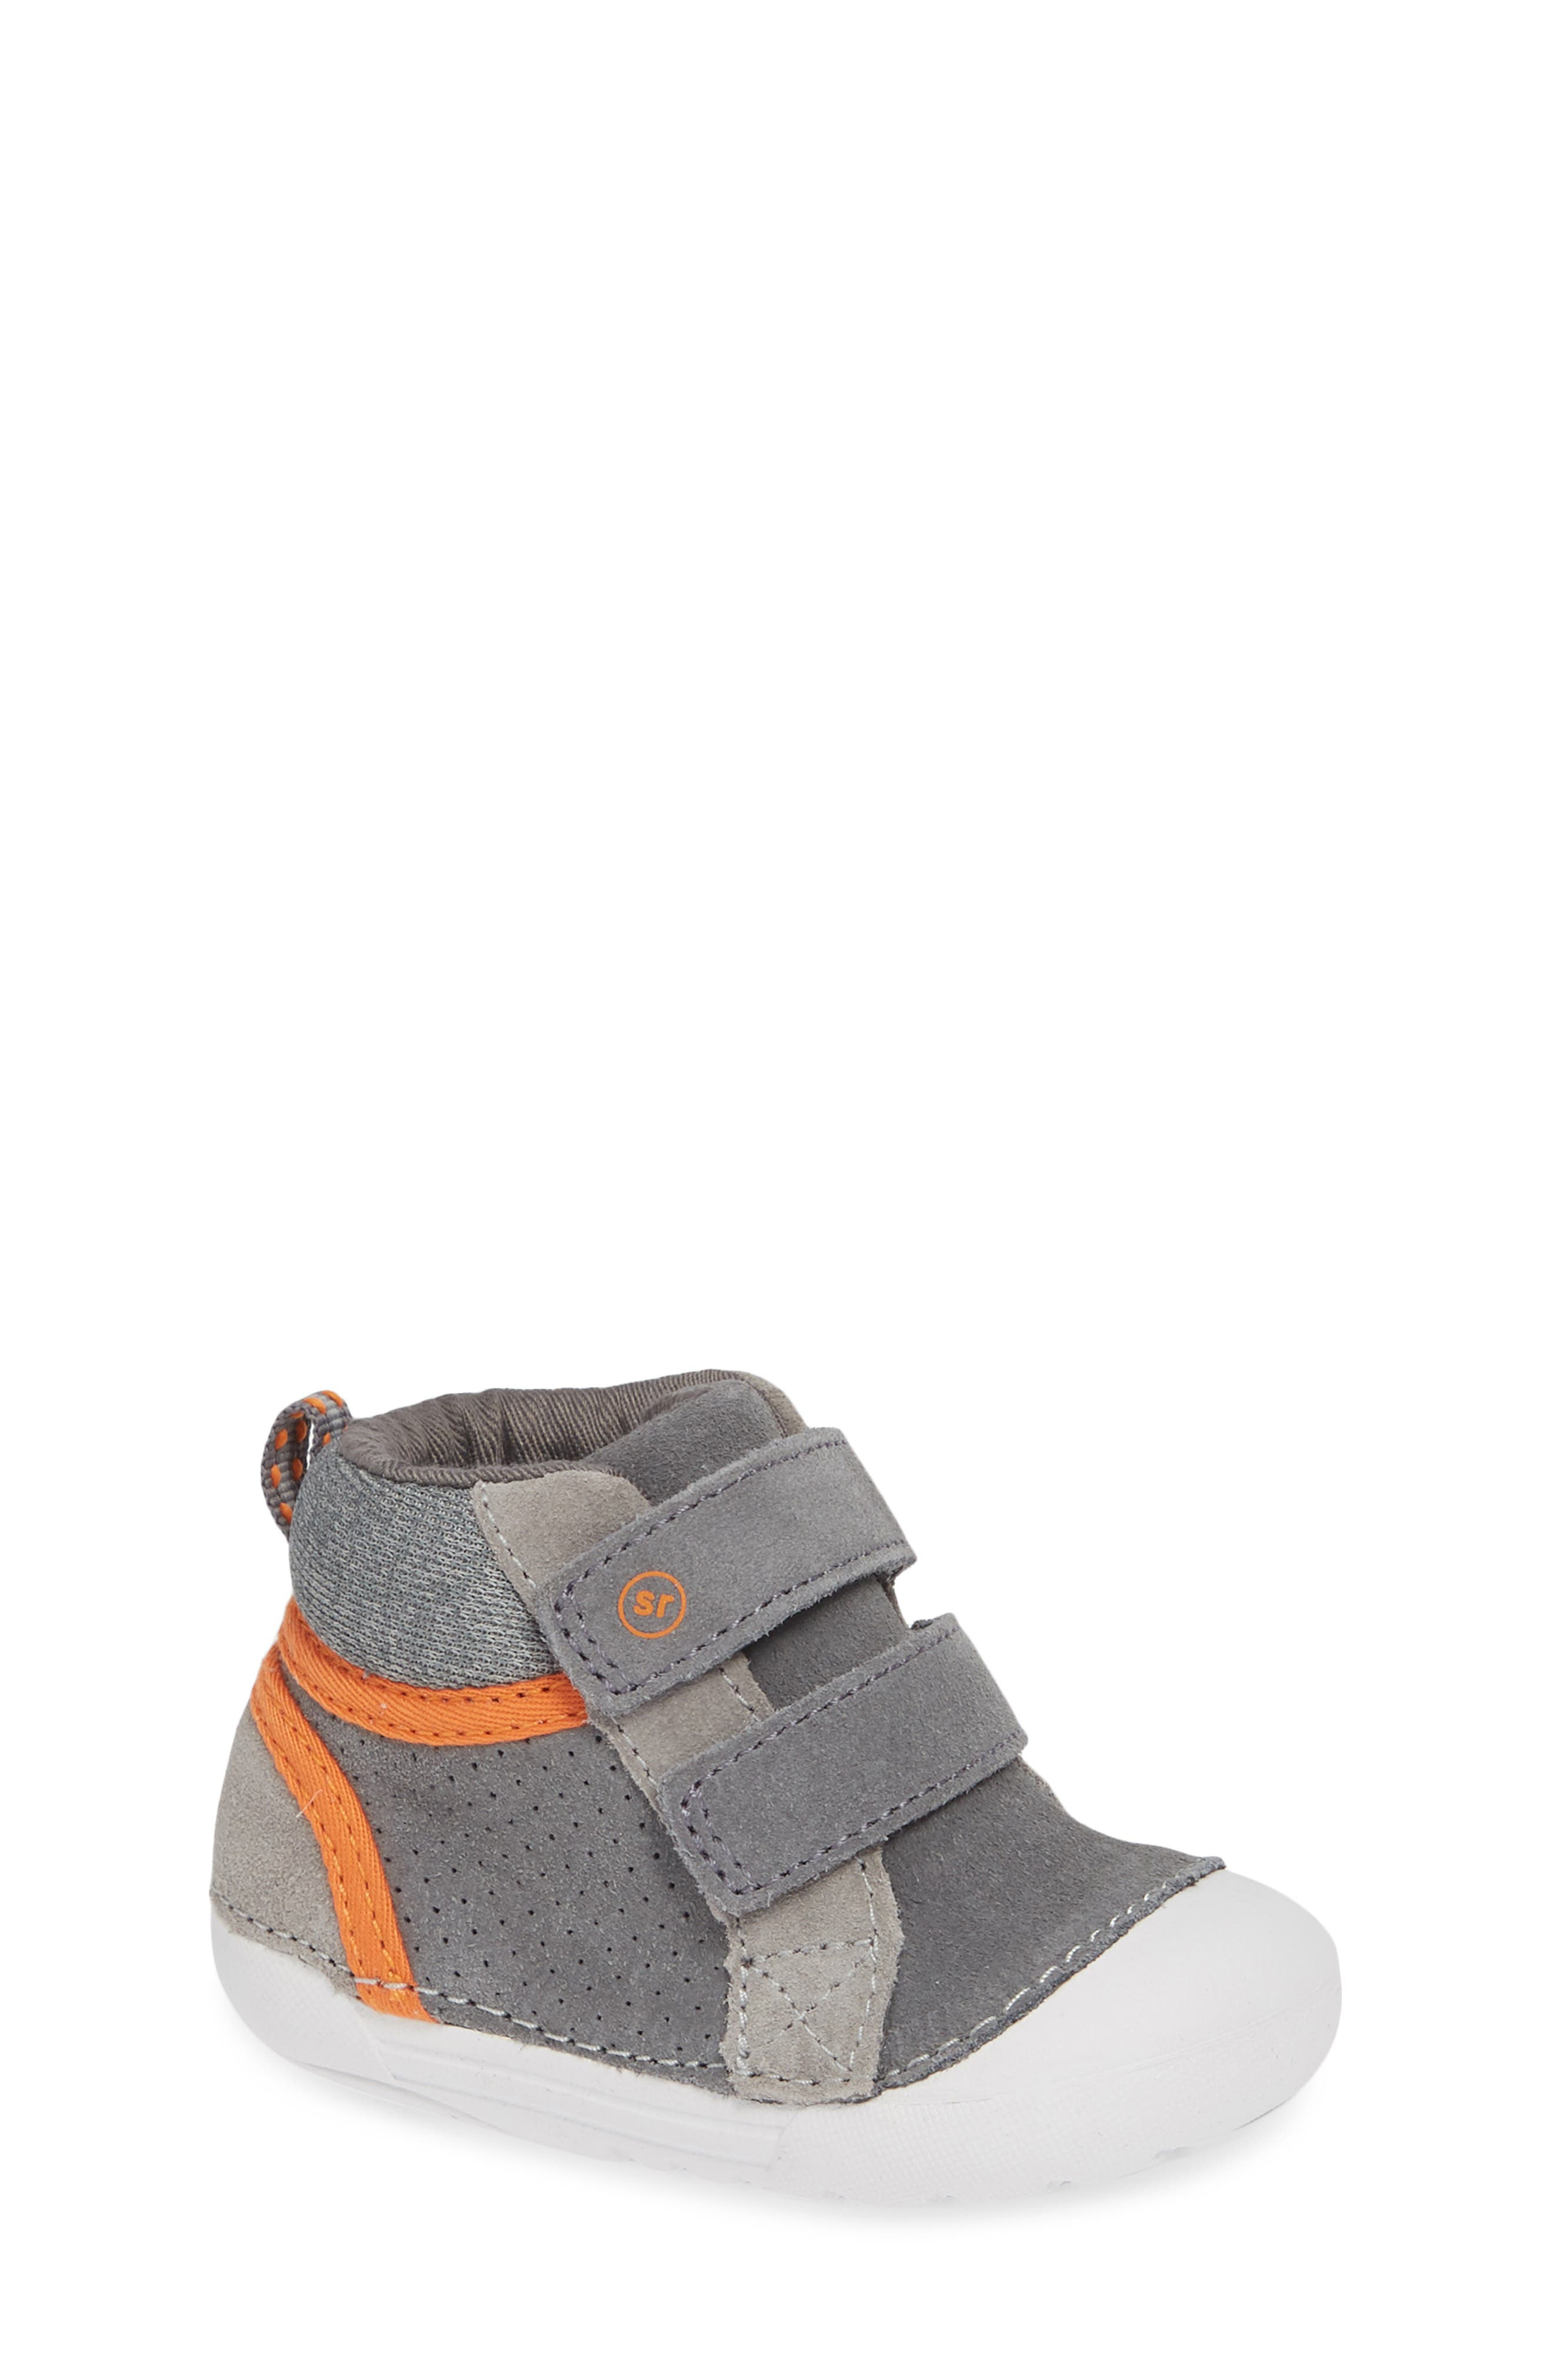 Soft Motion<sup>™</sup> Milo High Top Sneaker,                             Main thumbnail 1, color,                             GREY